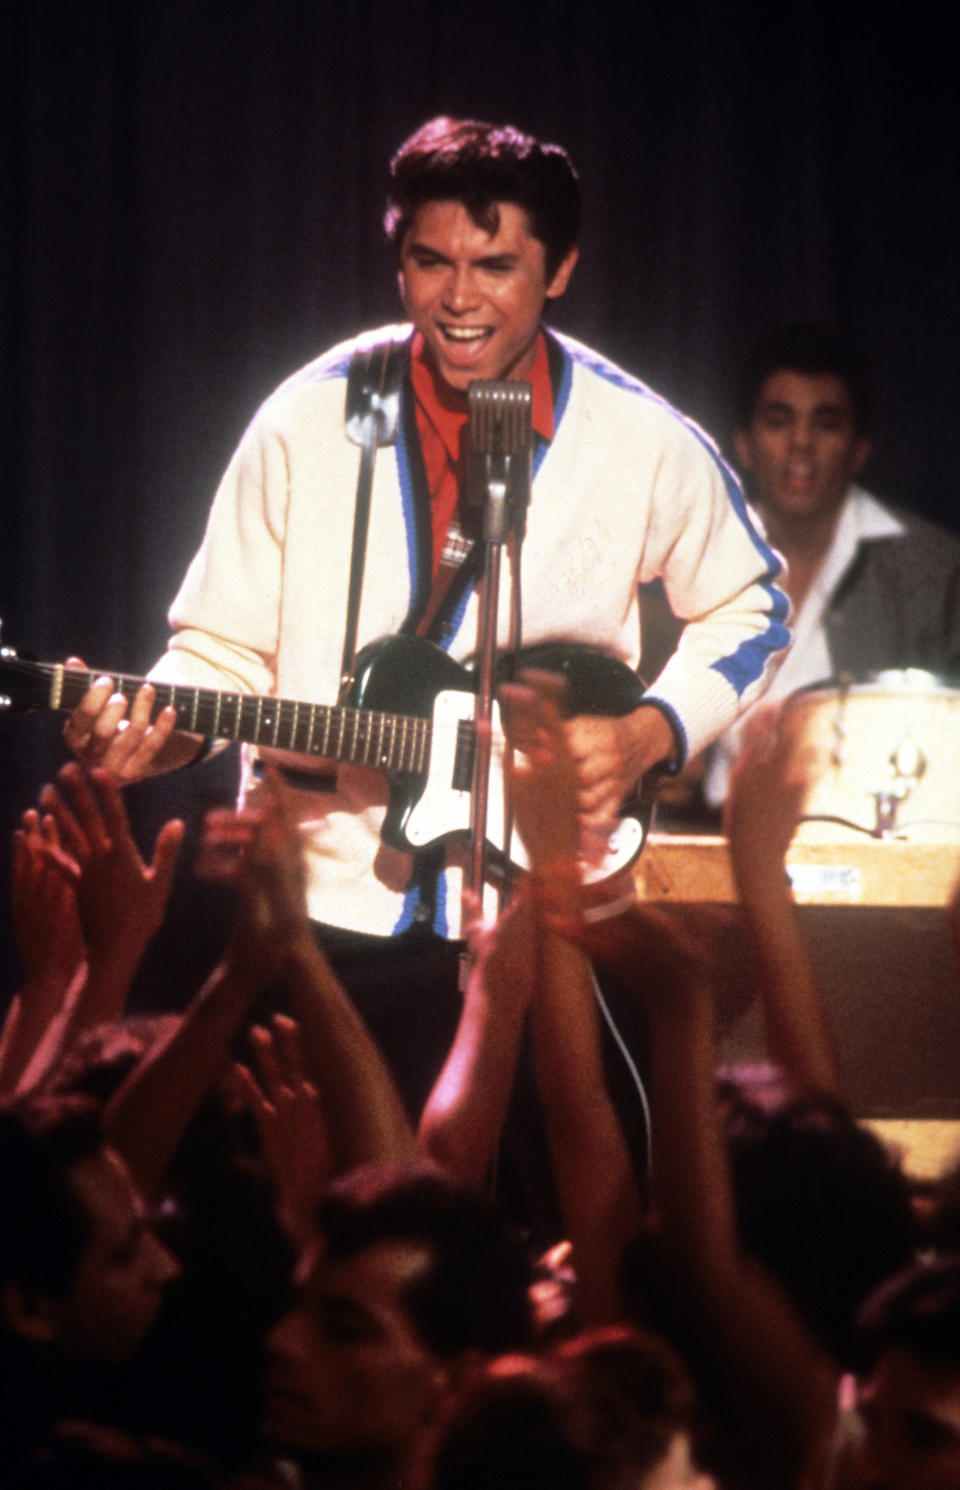 Lou Diamond Phillips performs in a scene from the film 'La Bamba', 1987. (Photo by Columbia Pictures/Getty Images)